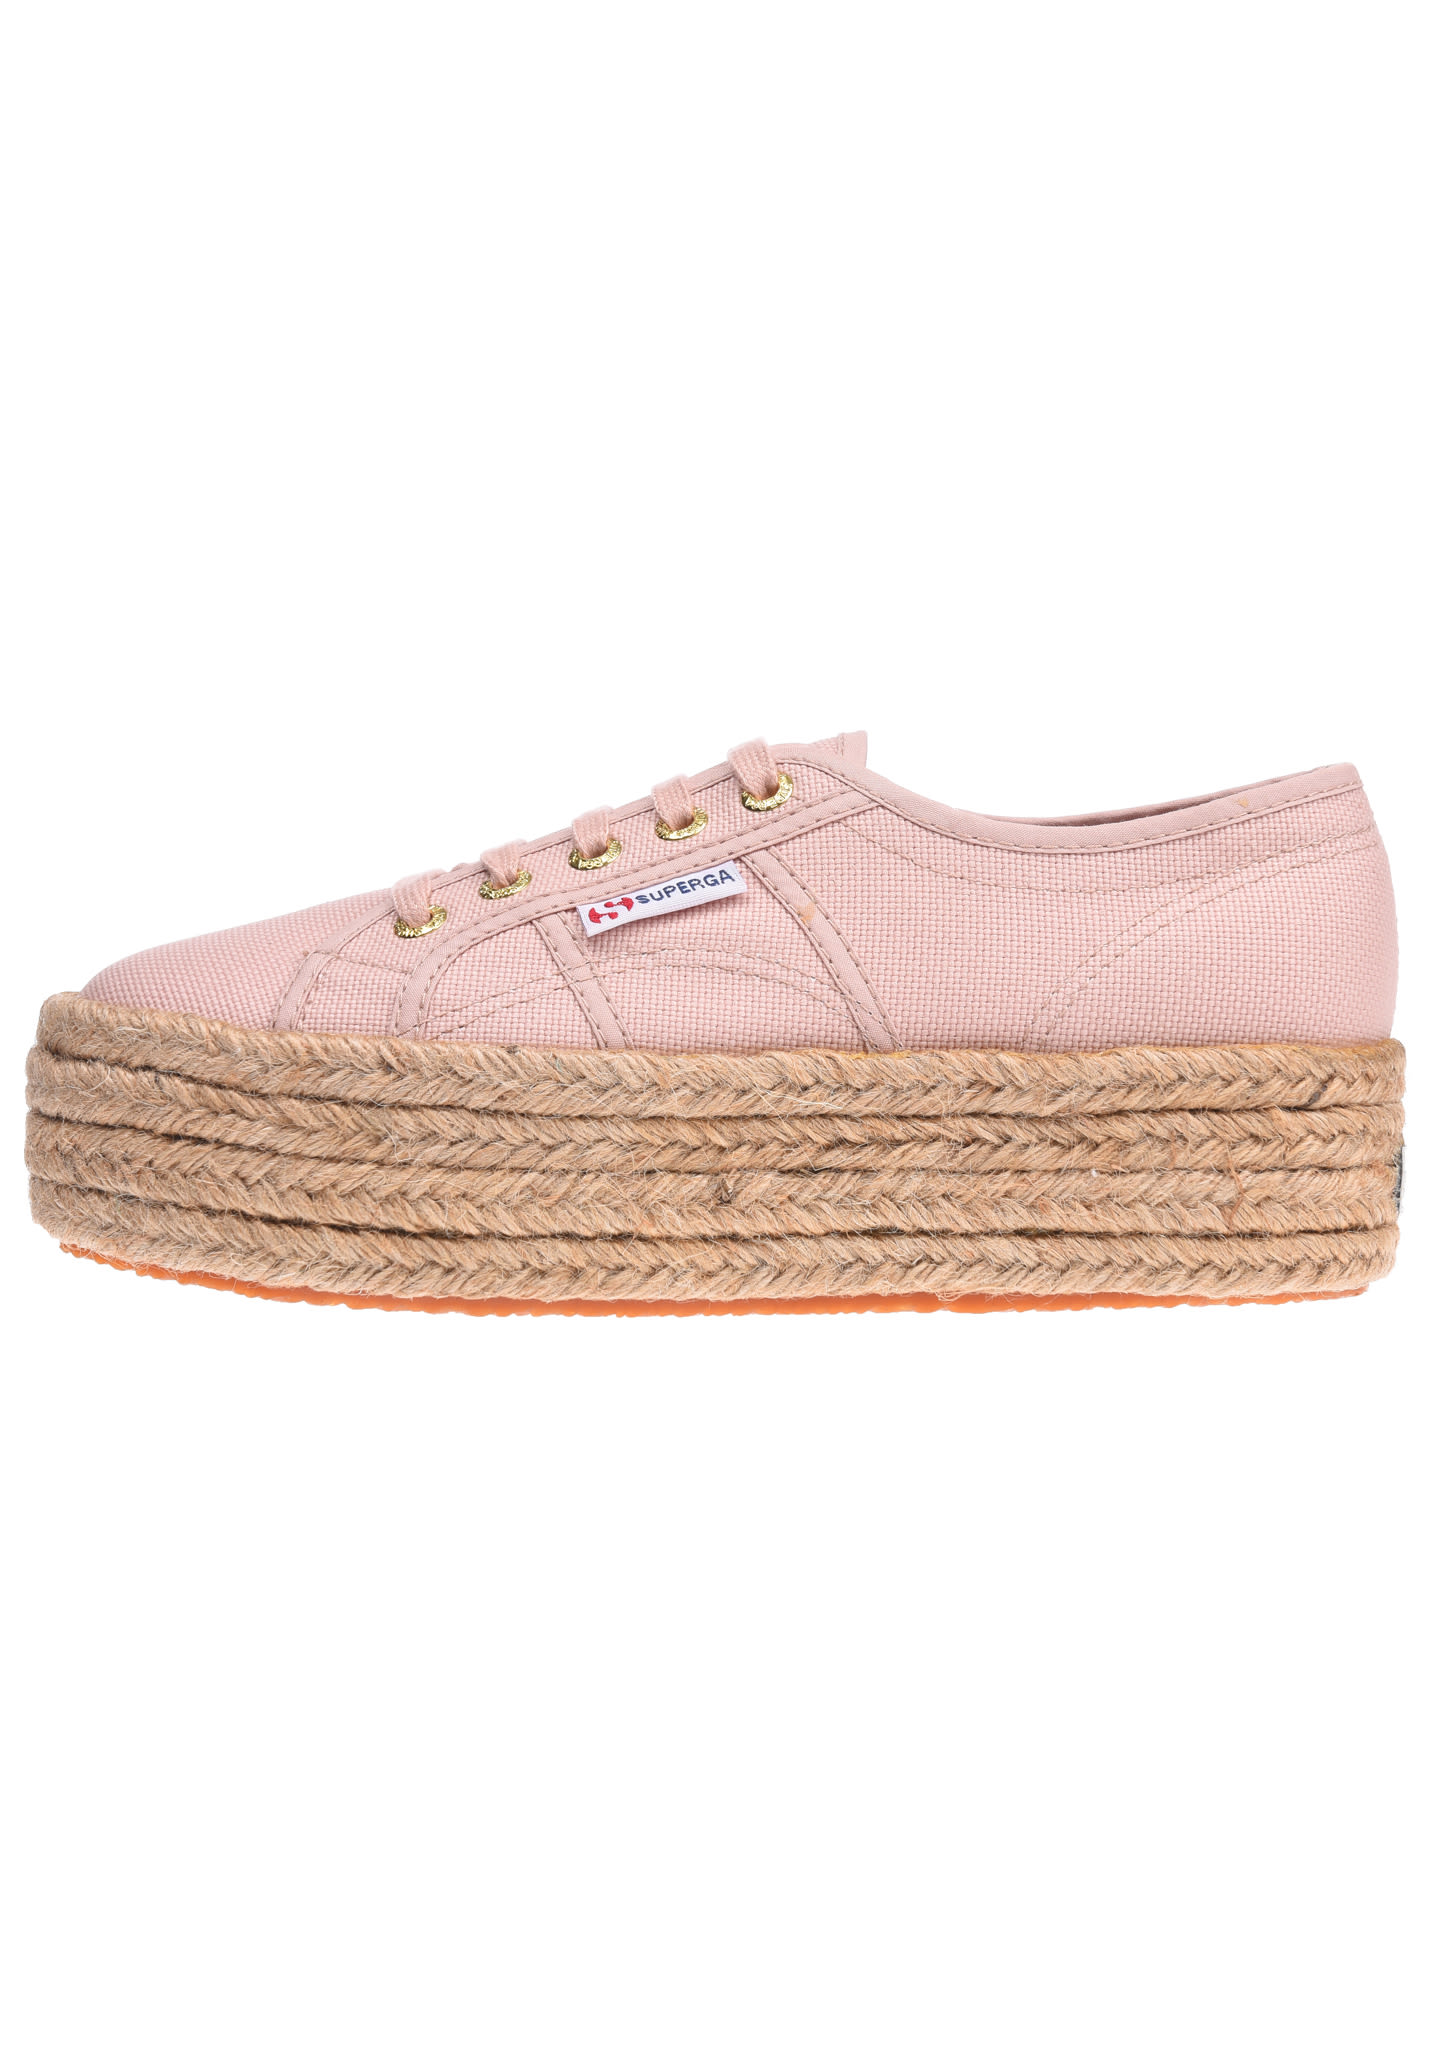 18c206fe0cd SUPERGA 2790 Cotropew - Sneakers for Women - Pink - Planet Sports